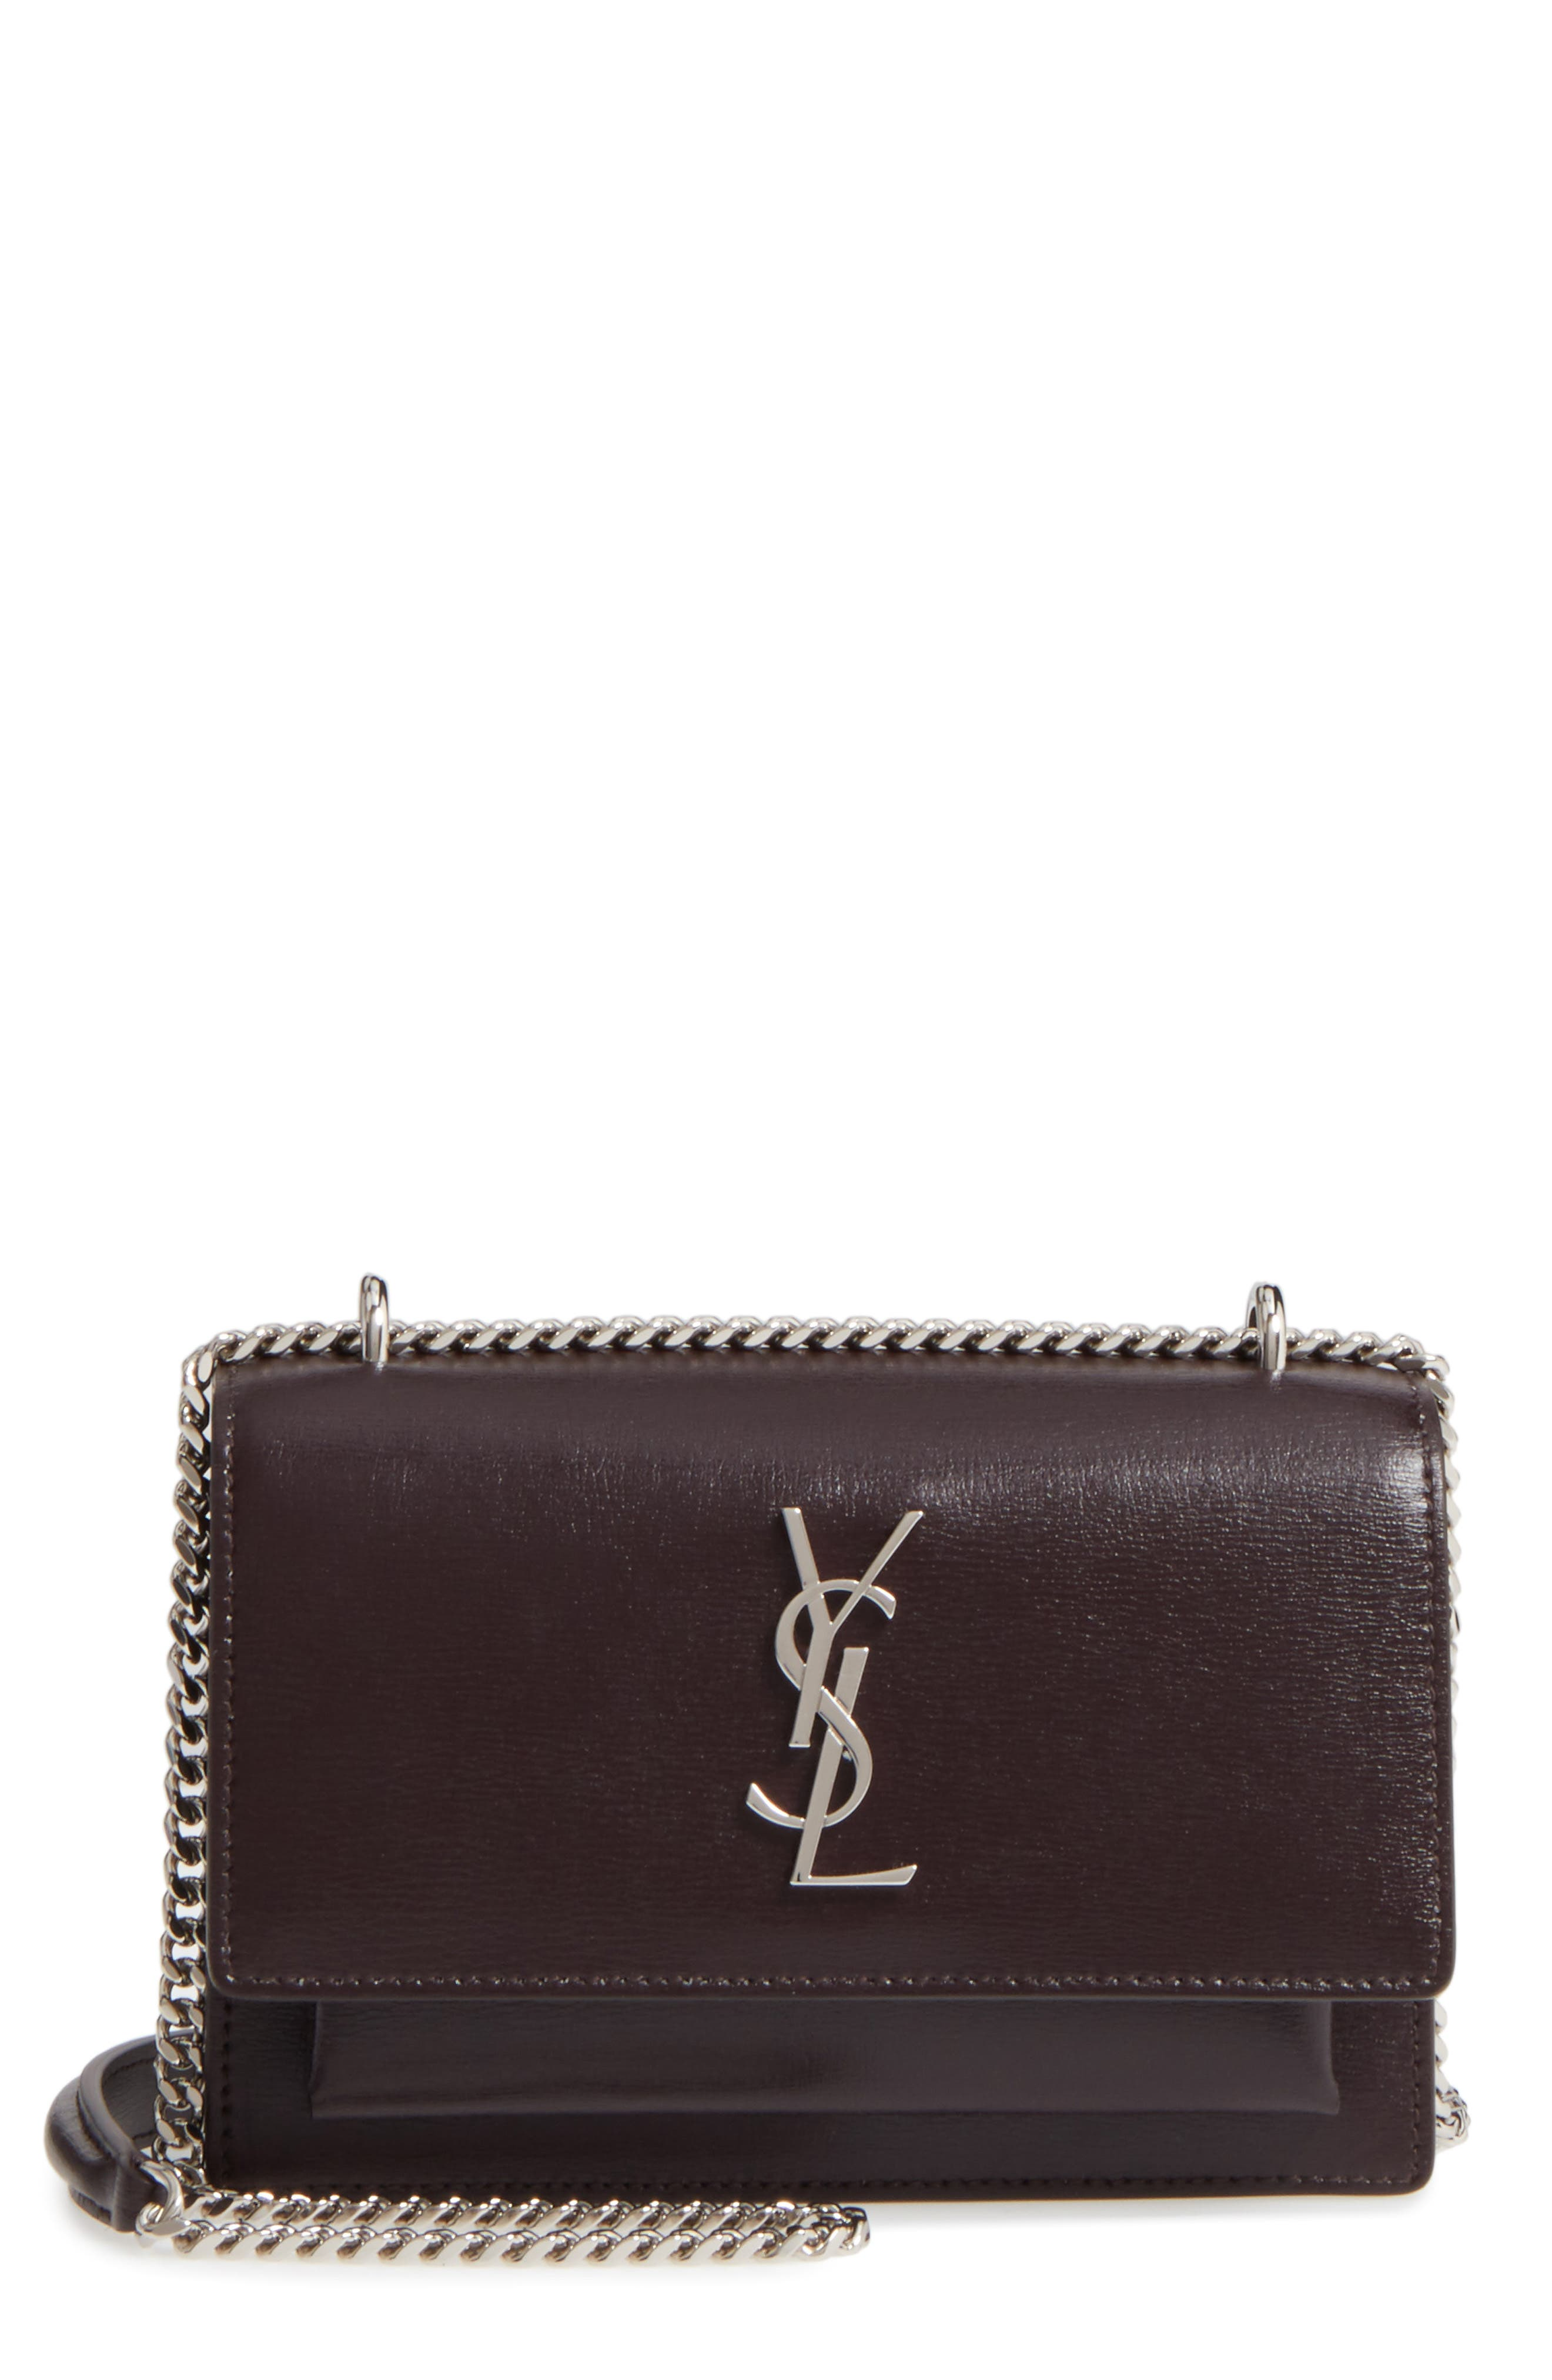 Alternate Image 1 Selected - Saint Laurent Sunset Leather Wallet on a Chain